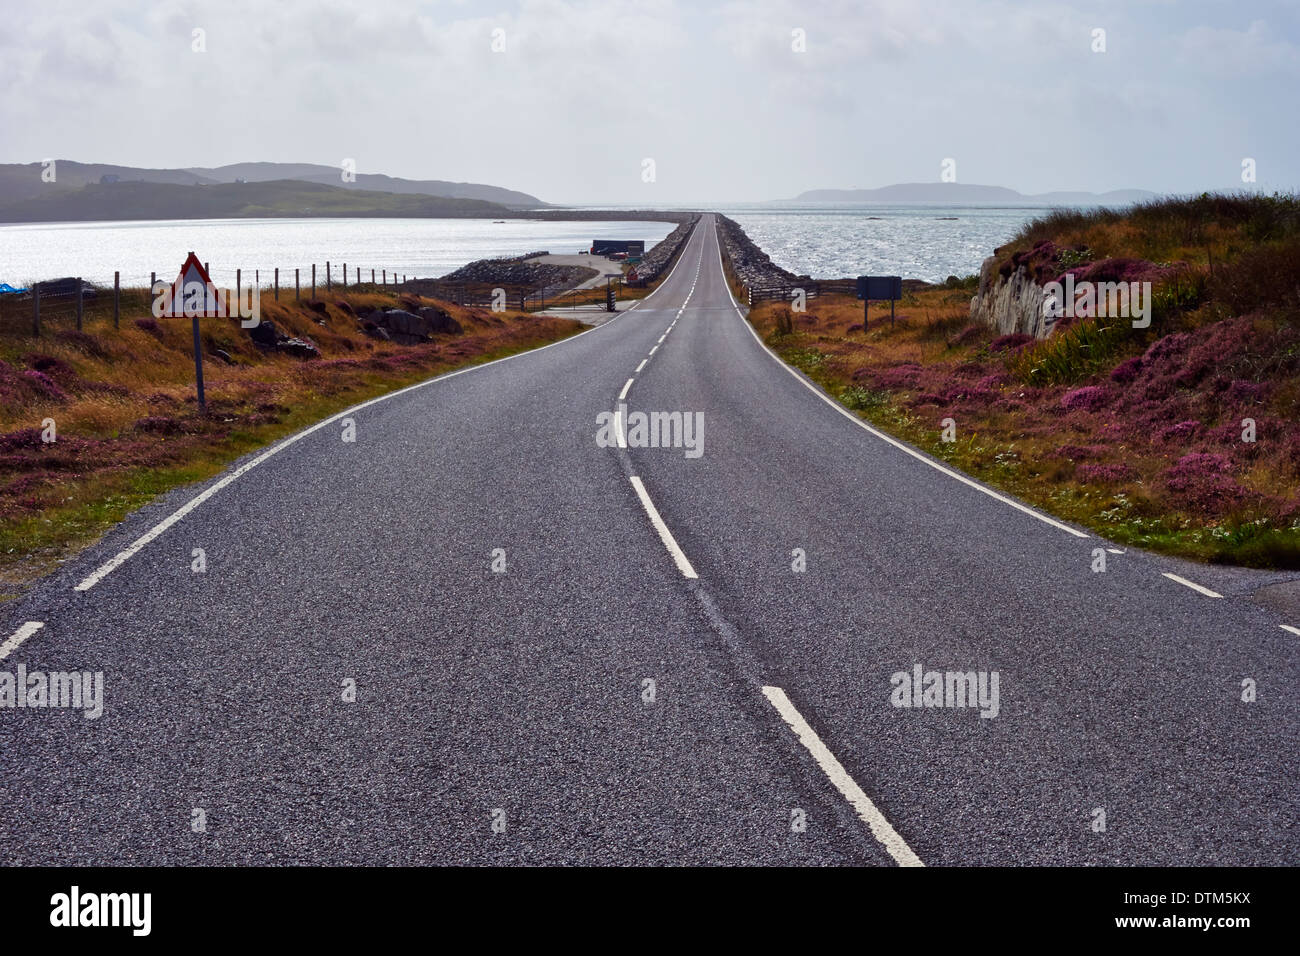 Causeway from South Uist to Eriskay in the Outer Hebrides, Scotland, UK. - Stock Image